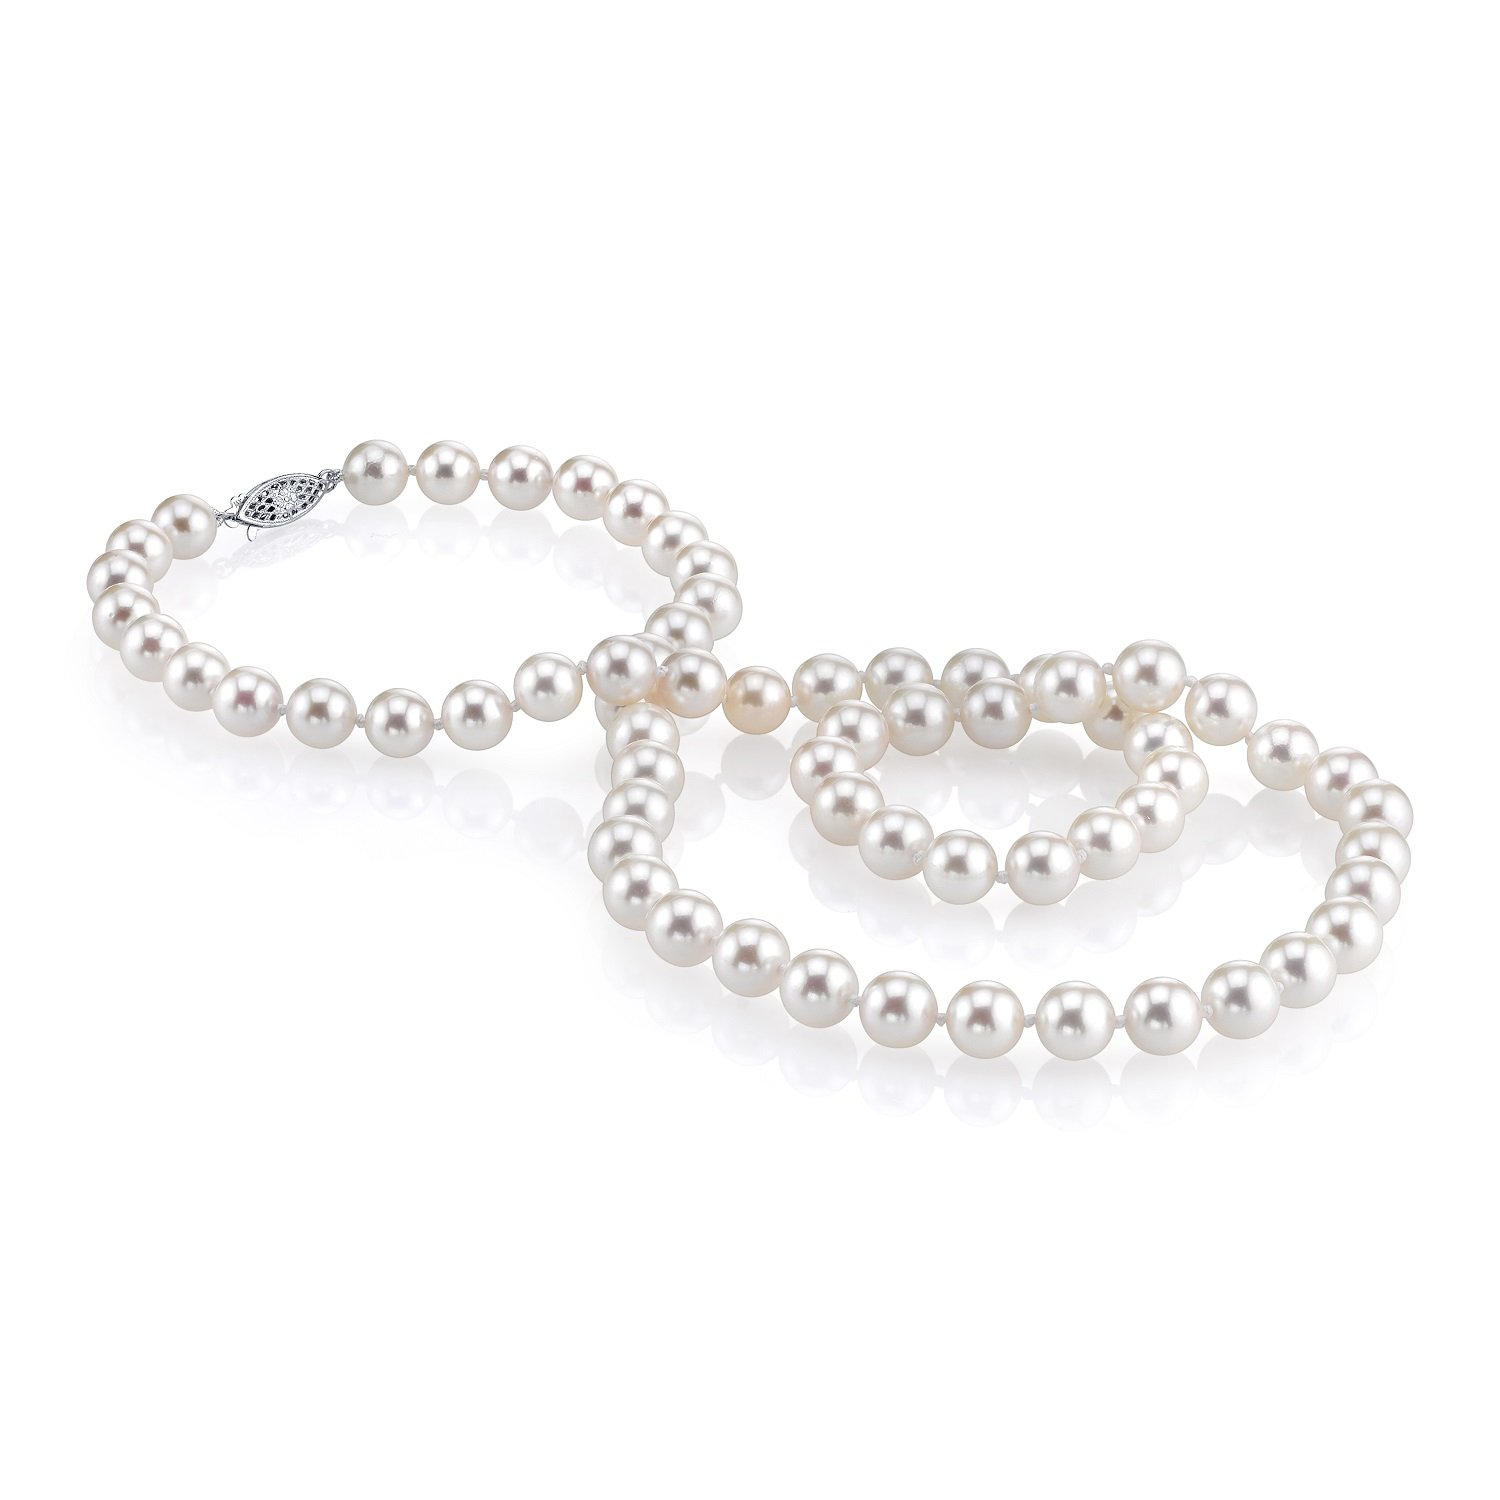 THE PEARL SOURCE 14K Gold 9-10mm AAA Quality White Freshwater Cultured Pearl Necklace for Women in 24'' Matinee Length